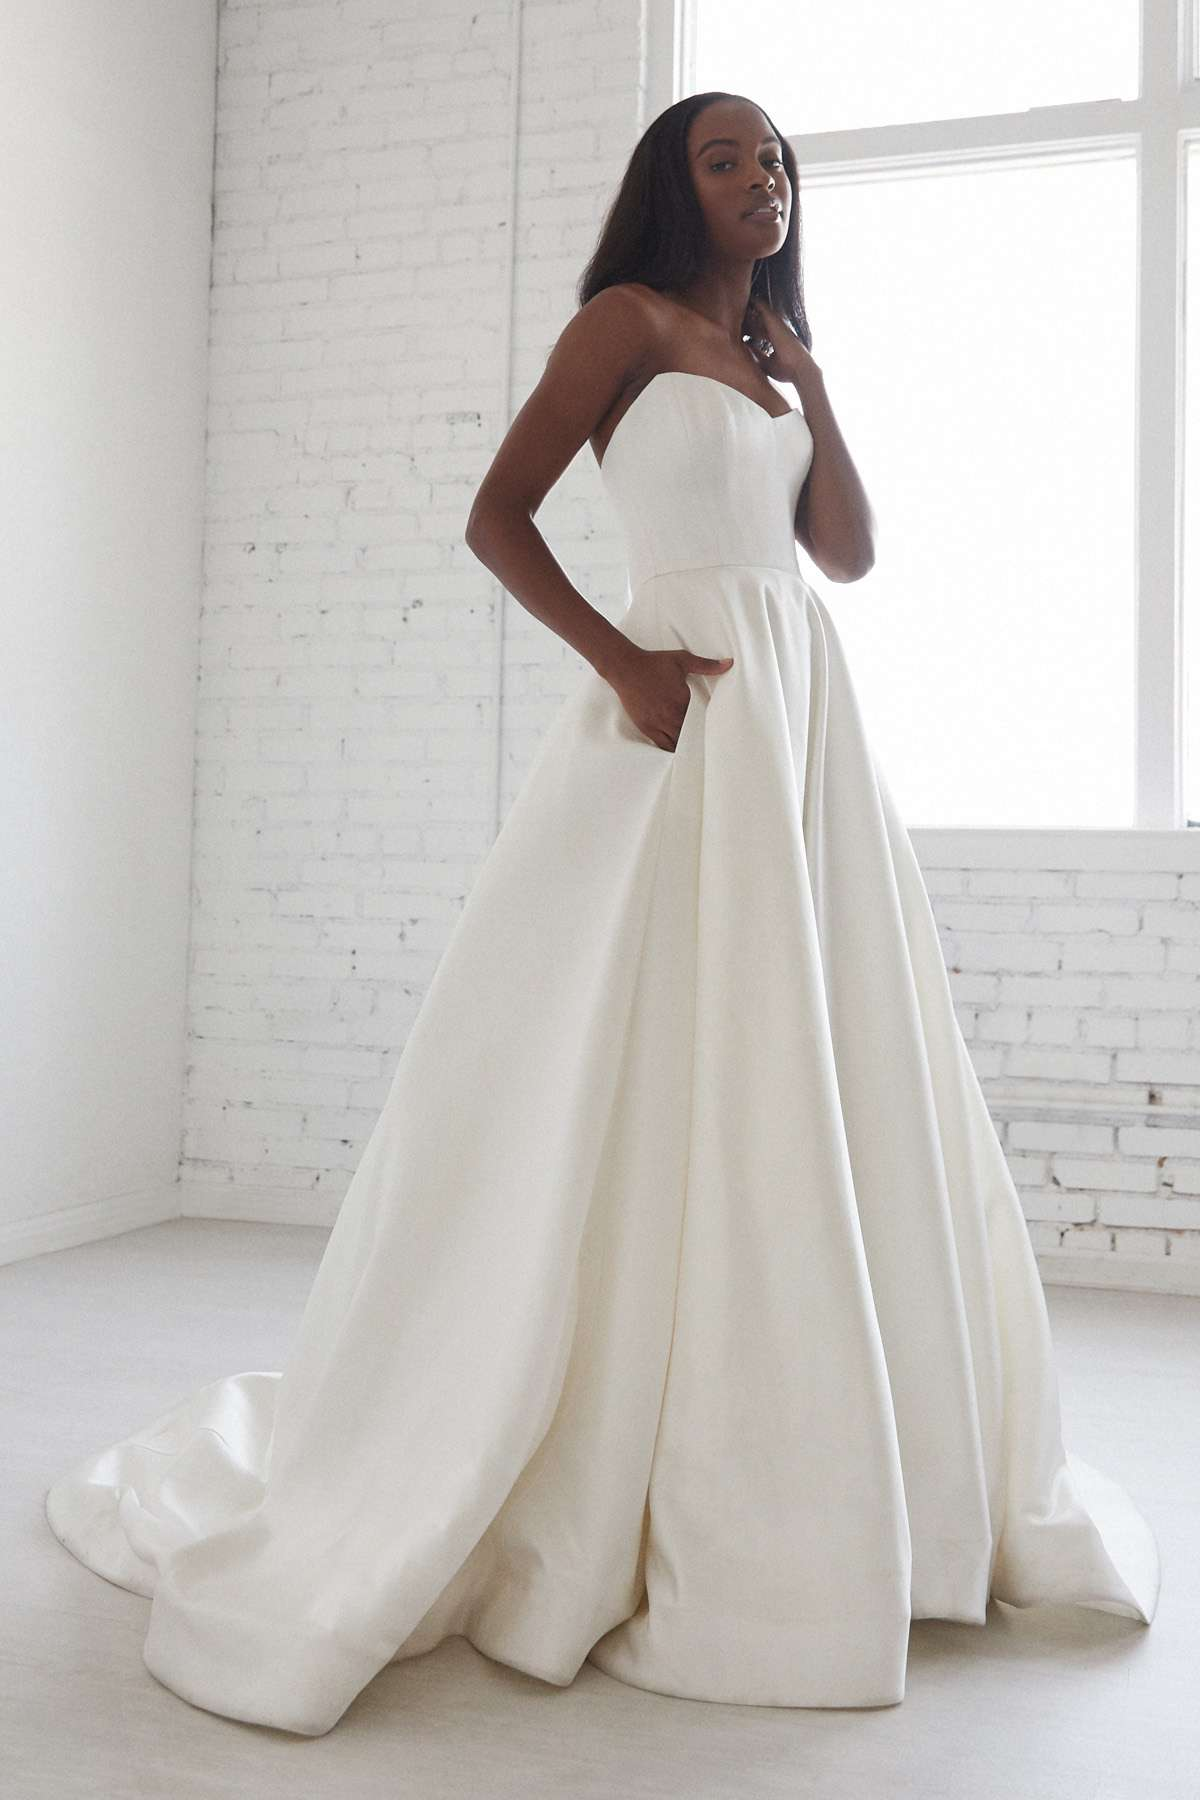 Model in strapless satin ballgown with skirt pockets